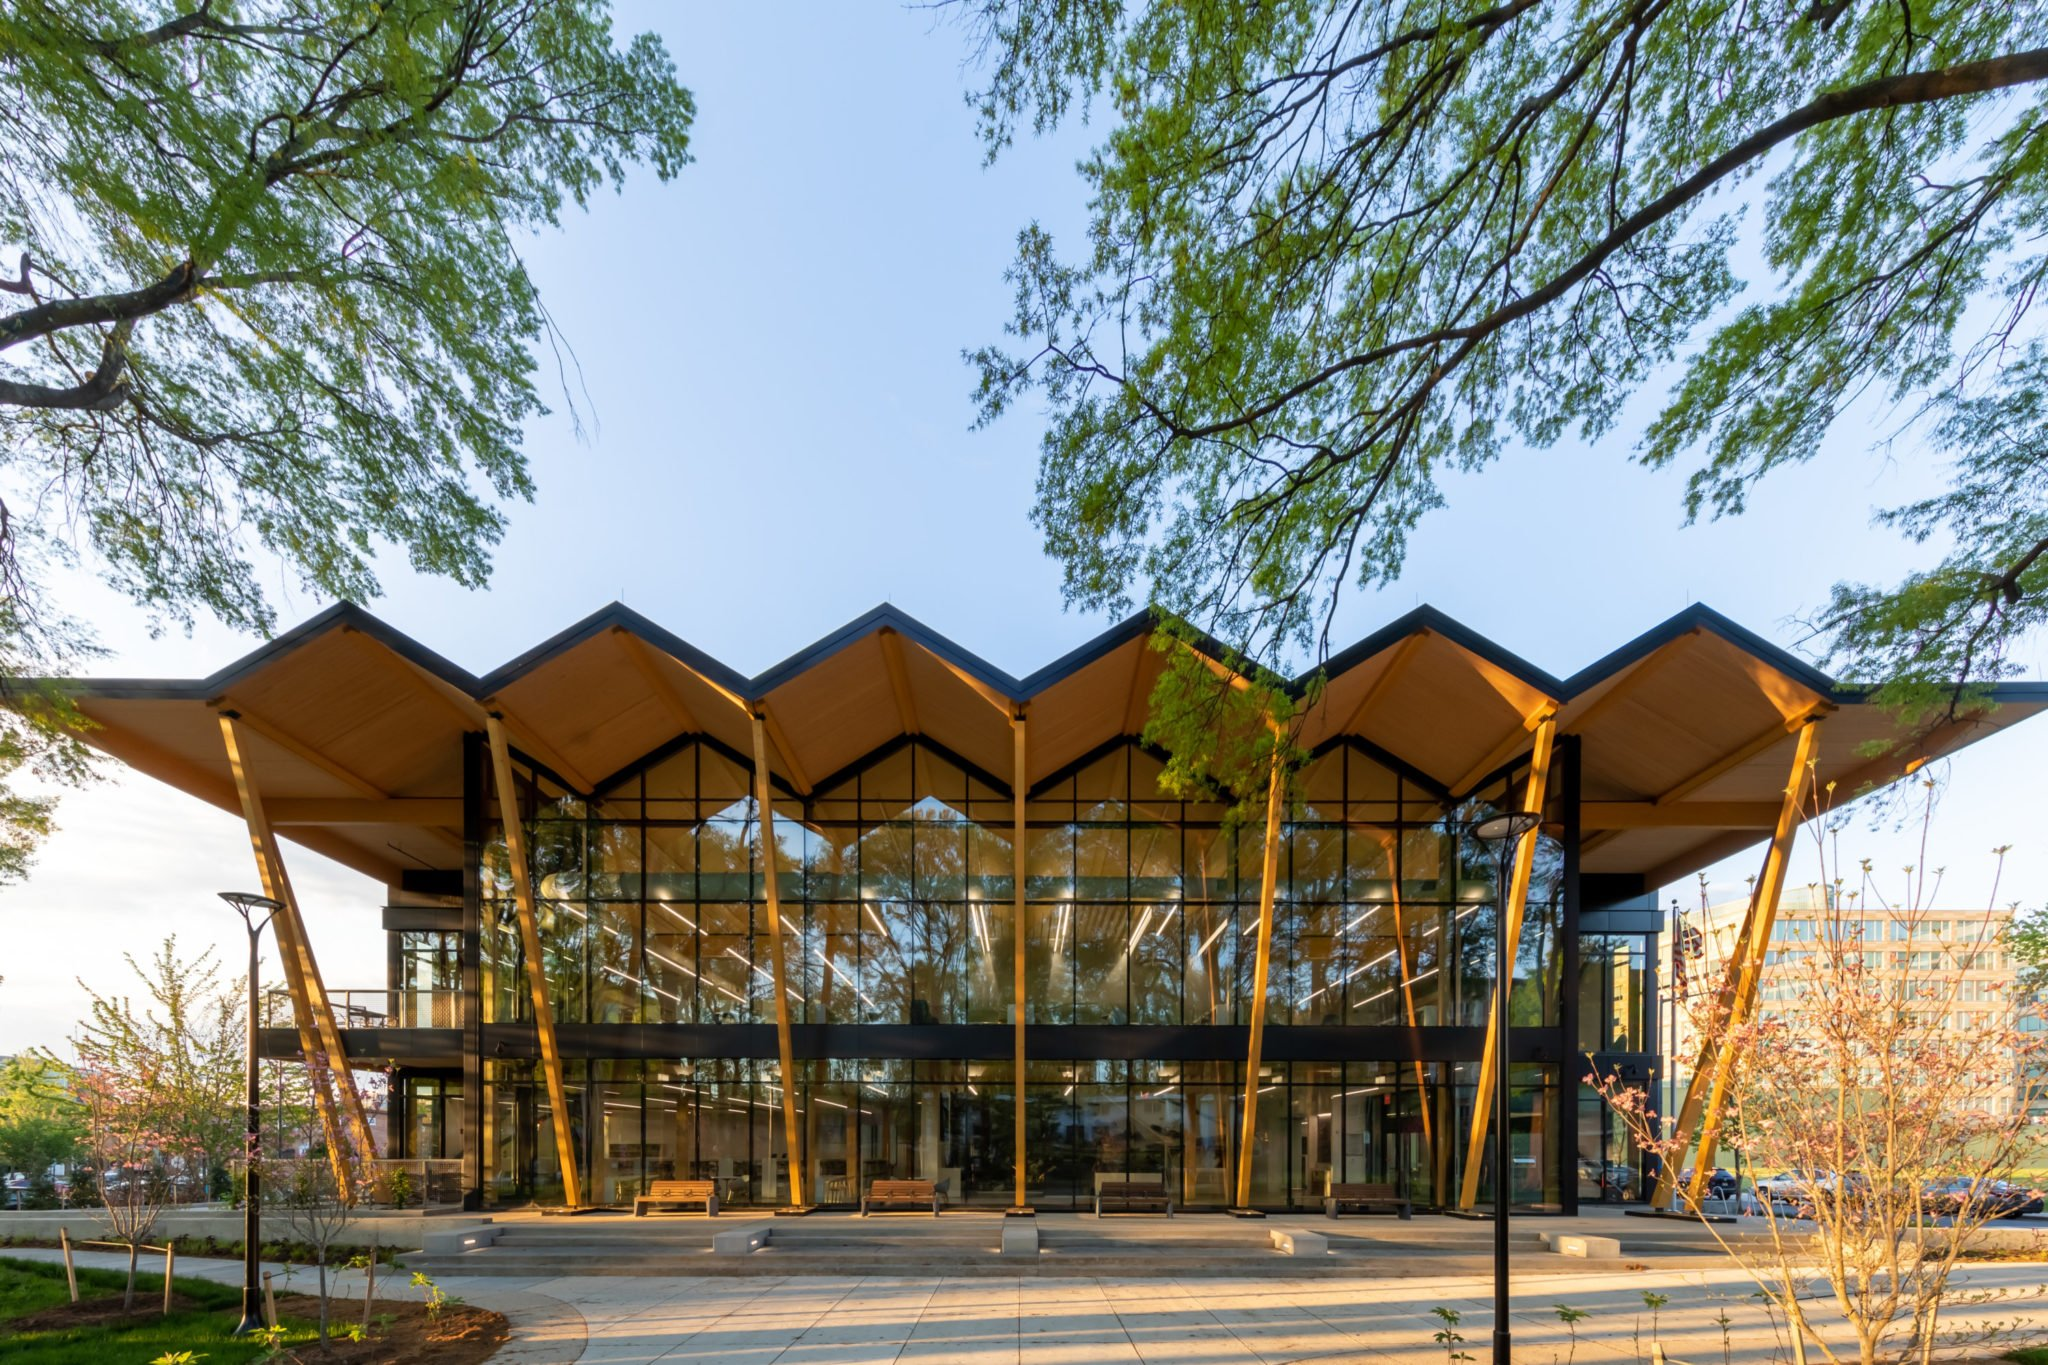 First Look: DC's Newest Library Is a Stunner